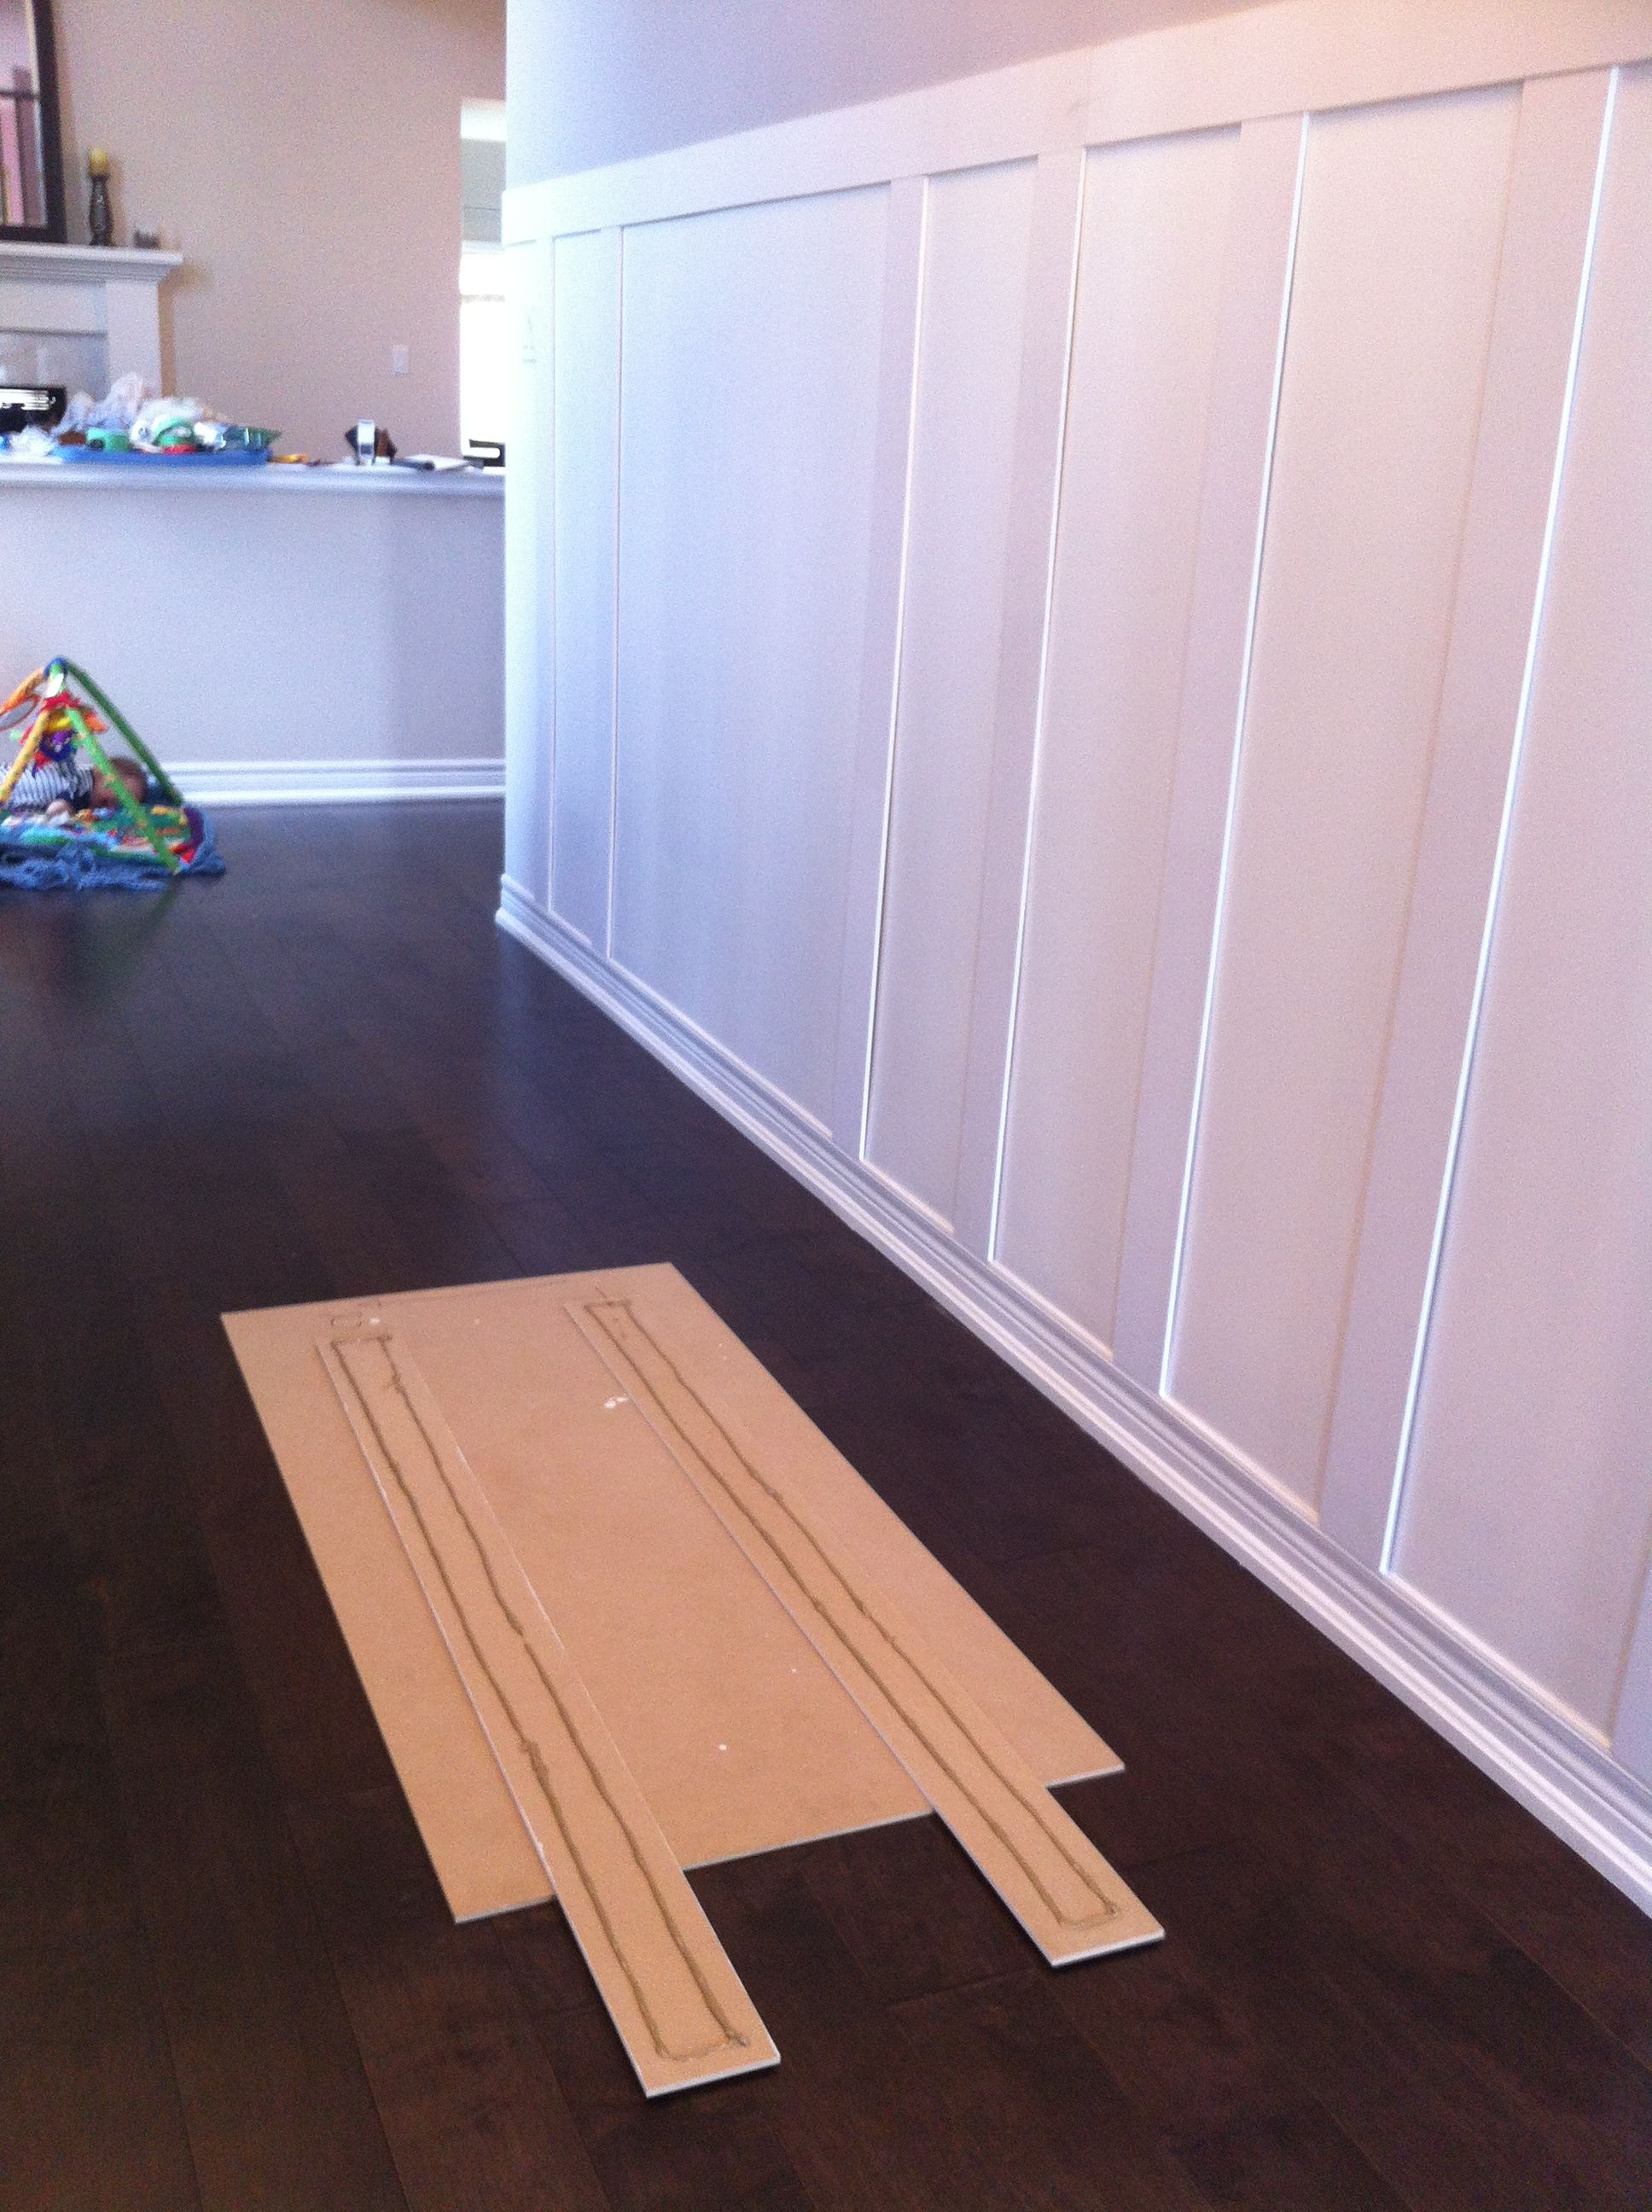 Diy Board Batten Wainscotting Using Existing Baseboards Used 1 4 Inch Thick Mdf Sheets For Battens And Door Stop Trim Fo Board And Batten Diy Boards Batten